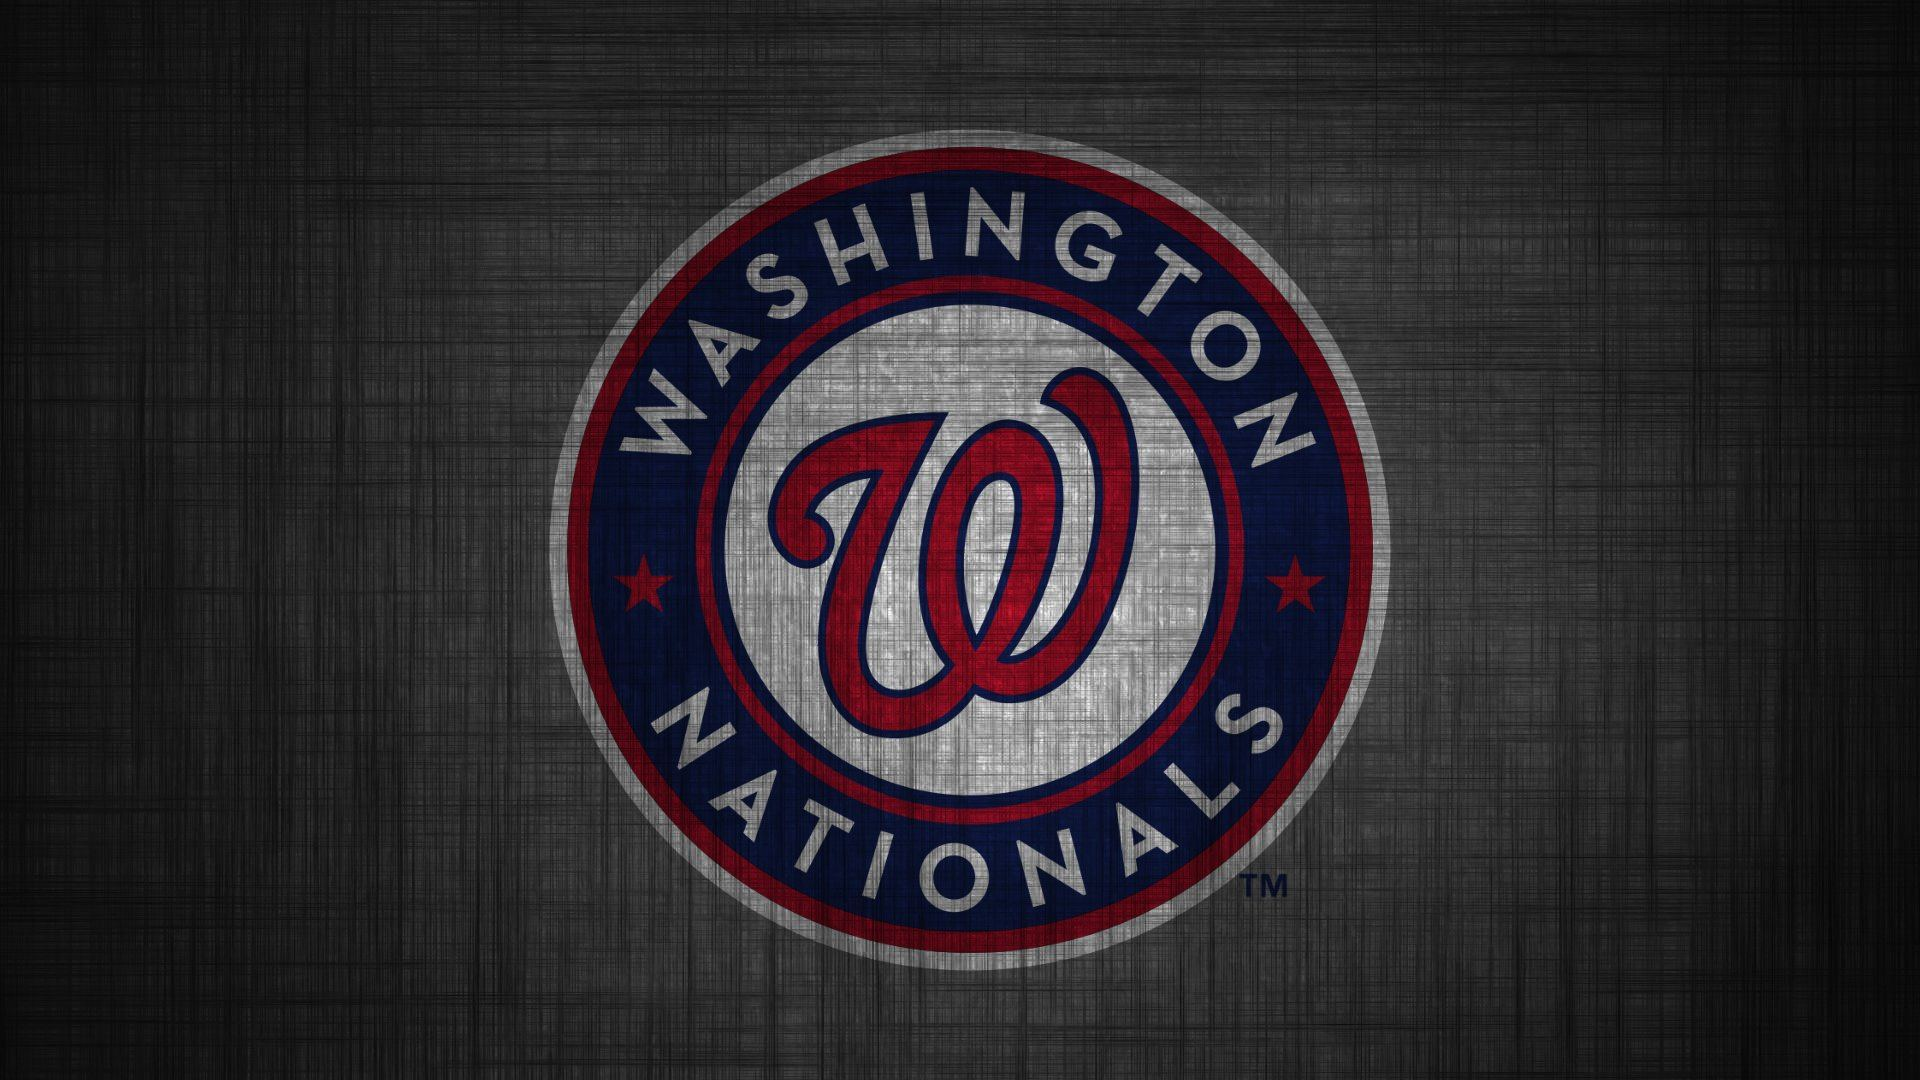 Washington Nationals Wallpaper   52DazheW Gallery 1920x1080